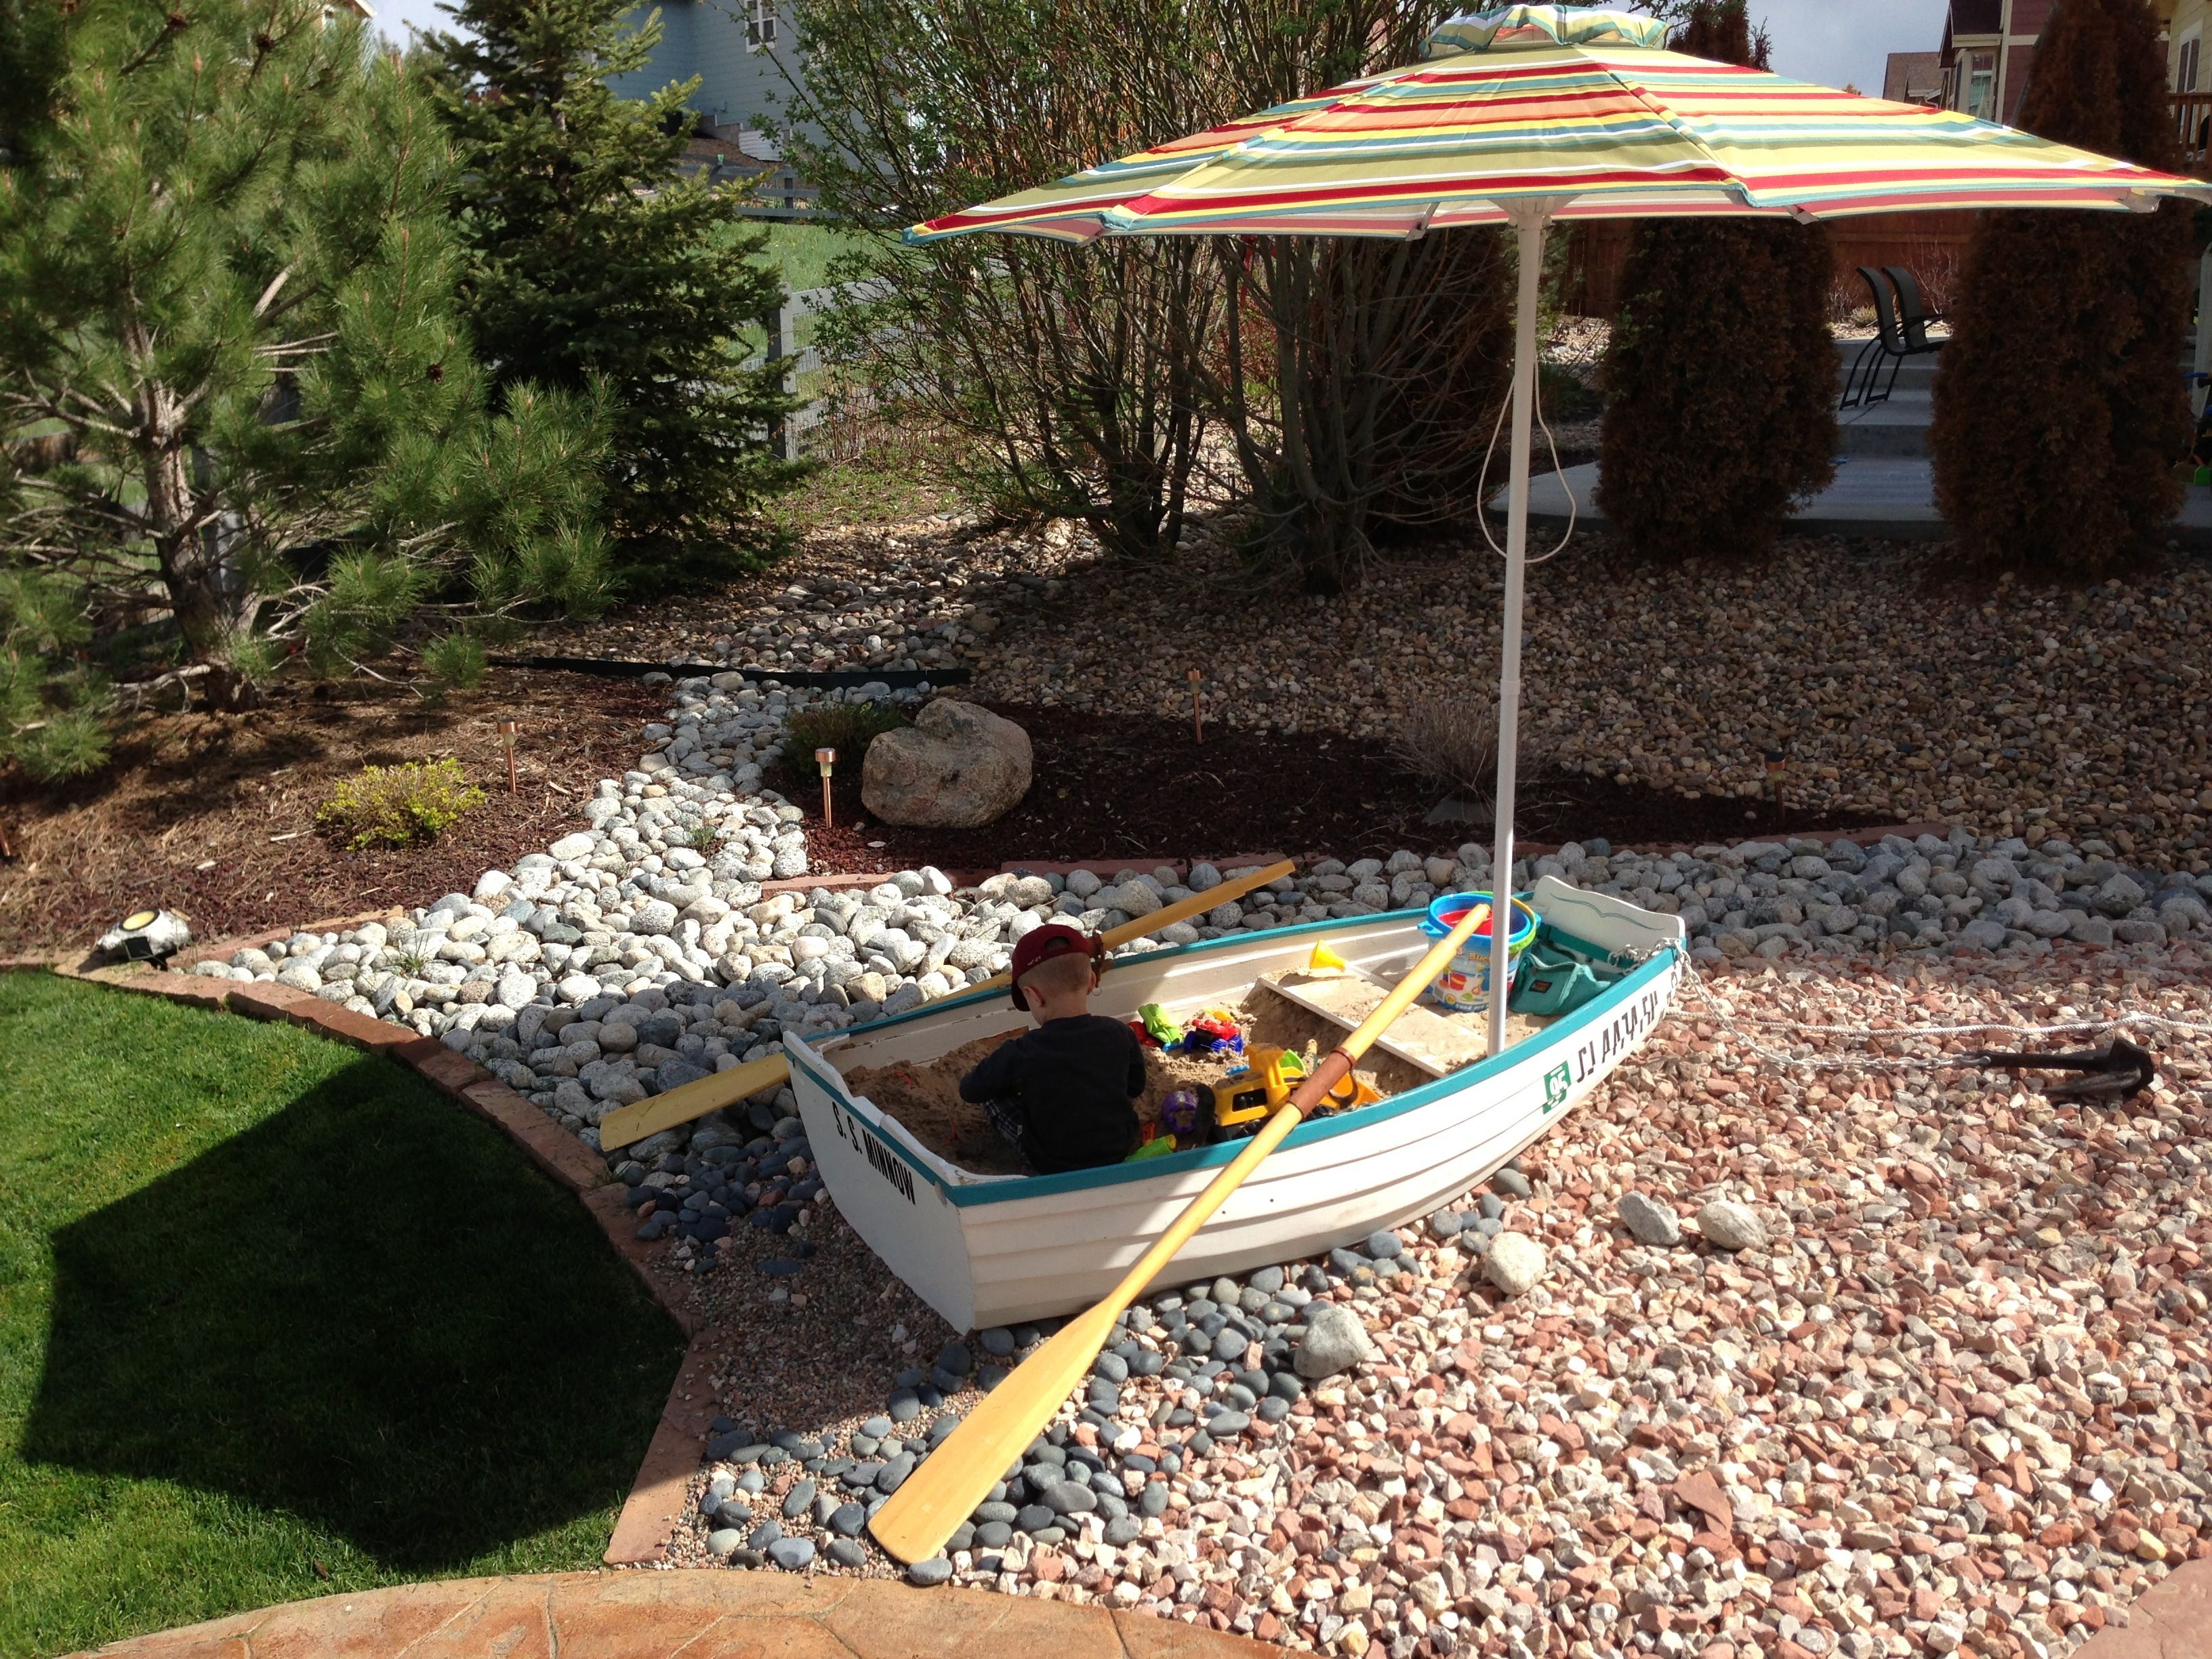 Sofa Gumtree Paignton Homemade Dinghy Turned Into Sandbox Didn T Have A Good Area For A